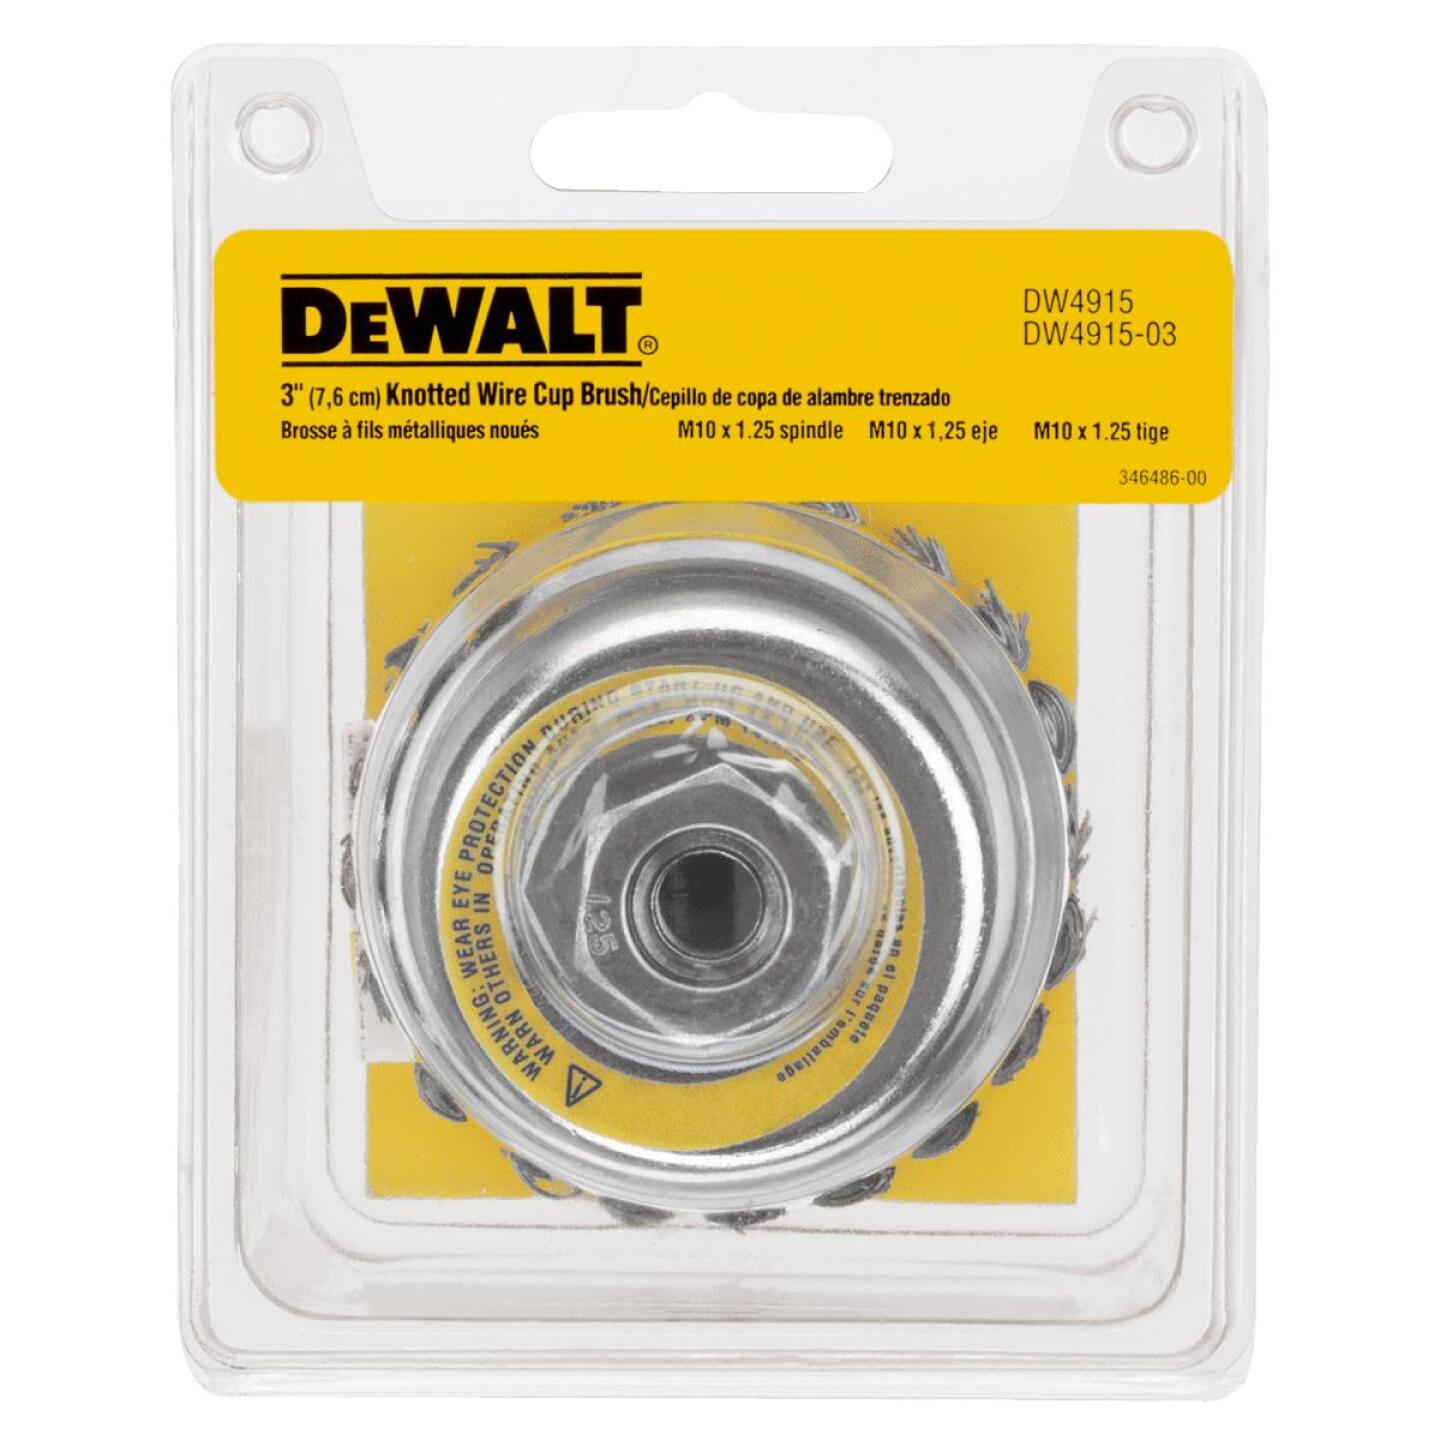 DeWalt 3 In. Knotted 0.020 In. Angle Grinder Wire Brush Image 2